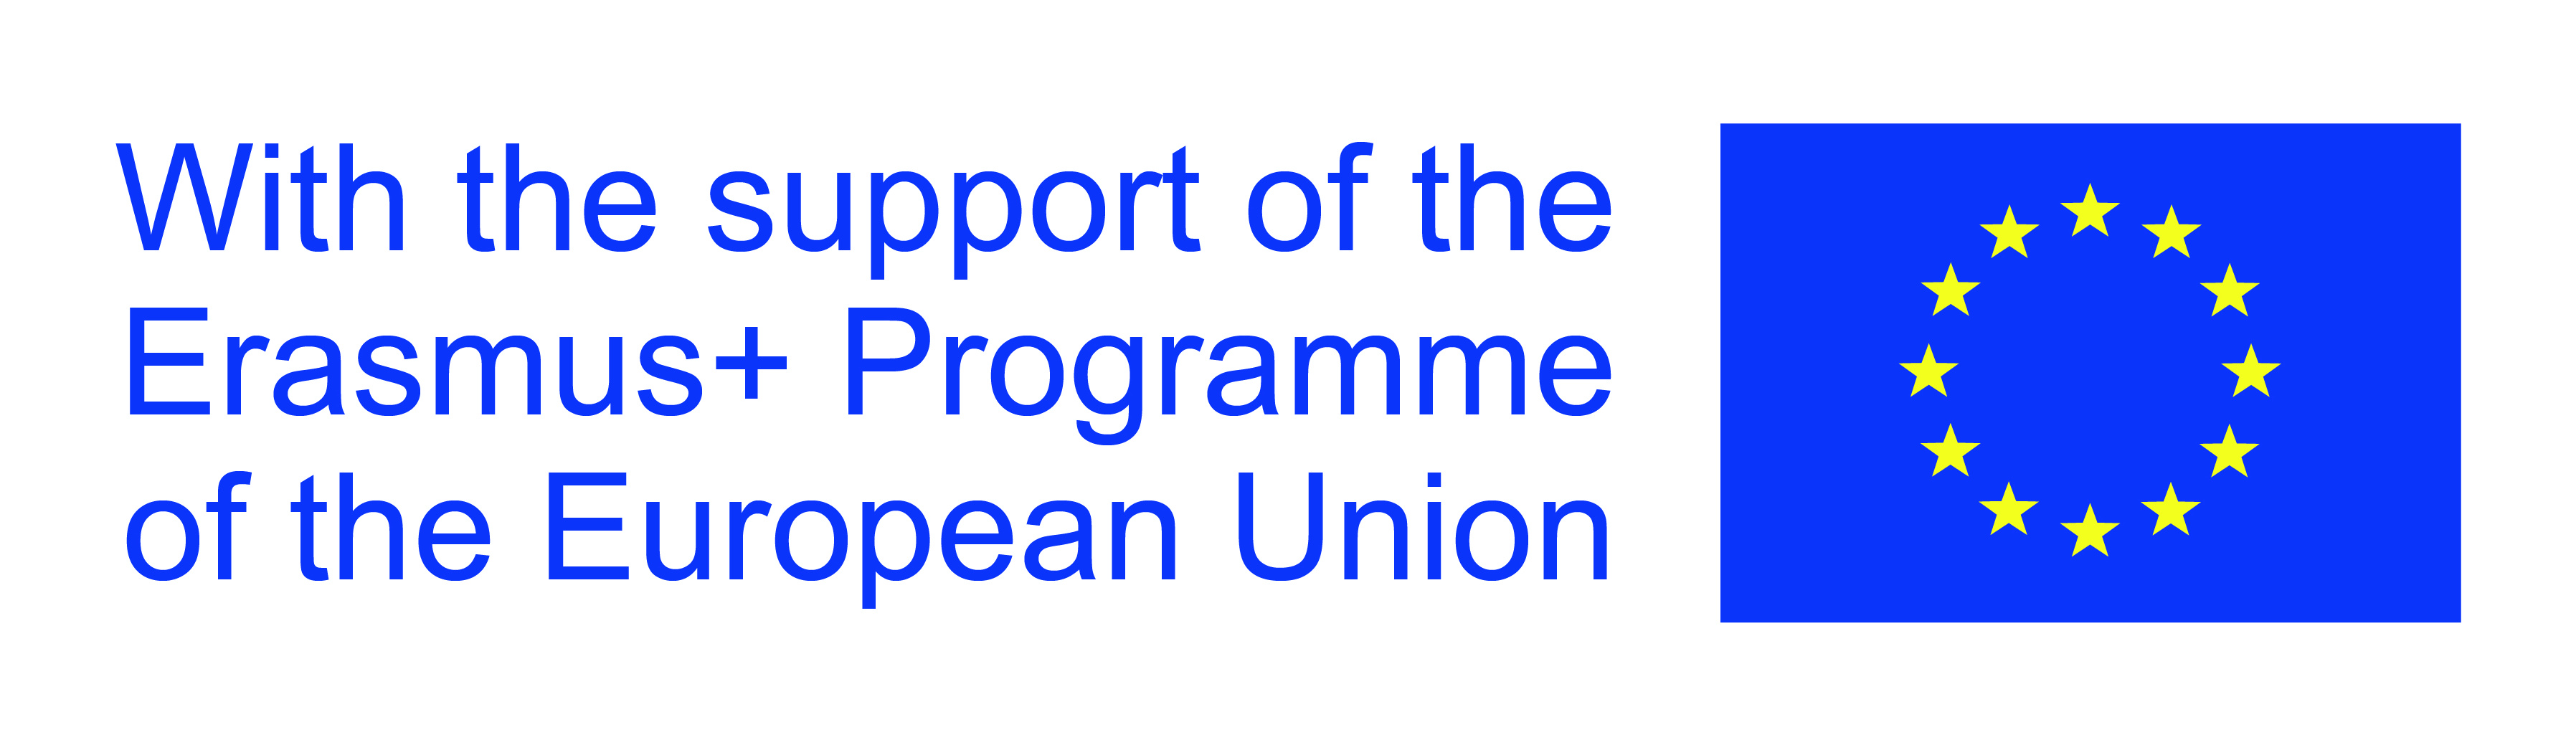 Supported by Erasmus+ Programme